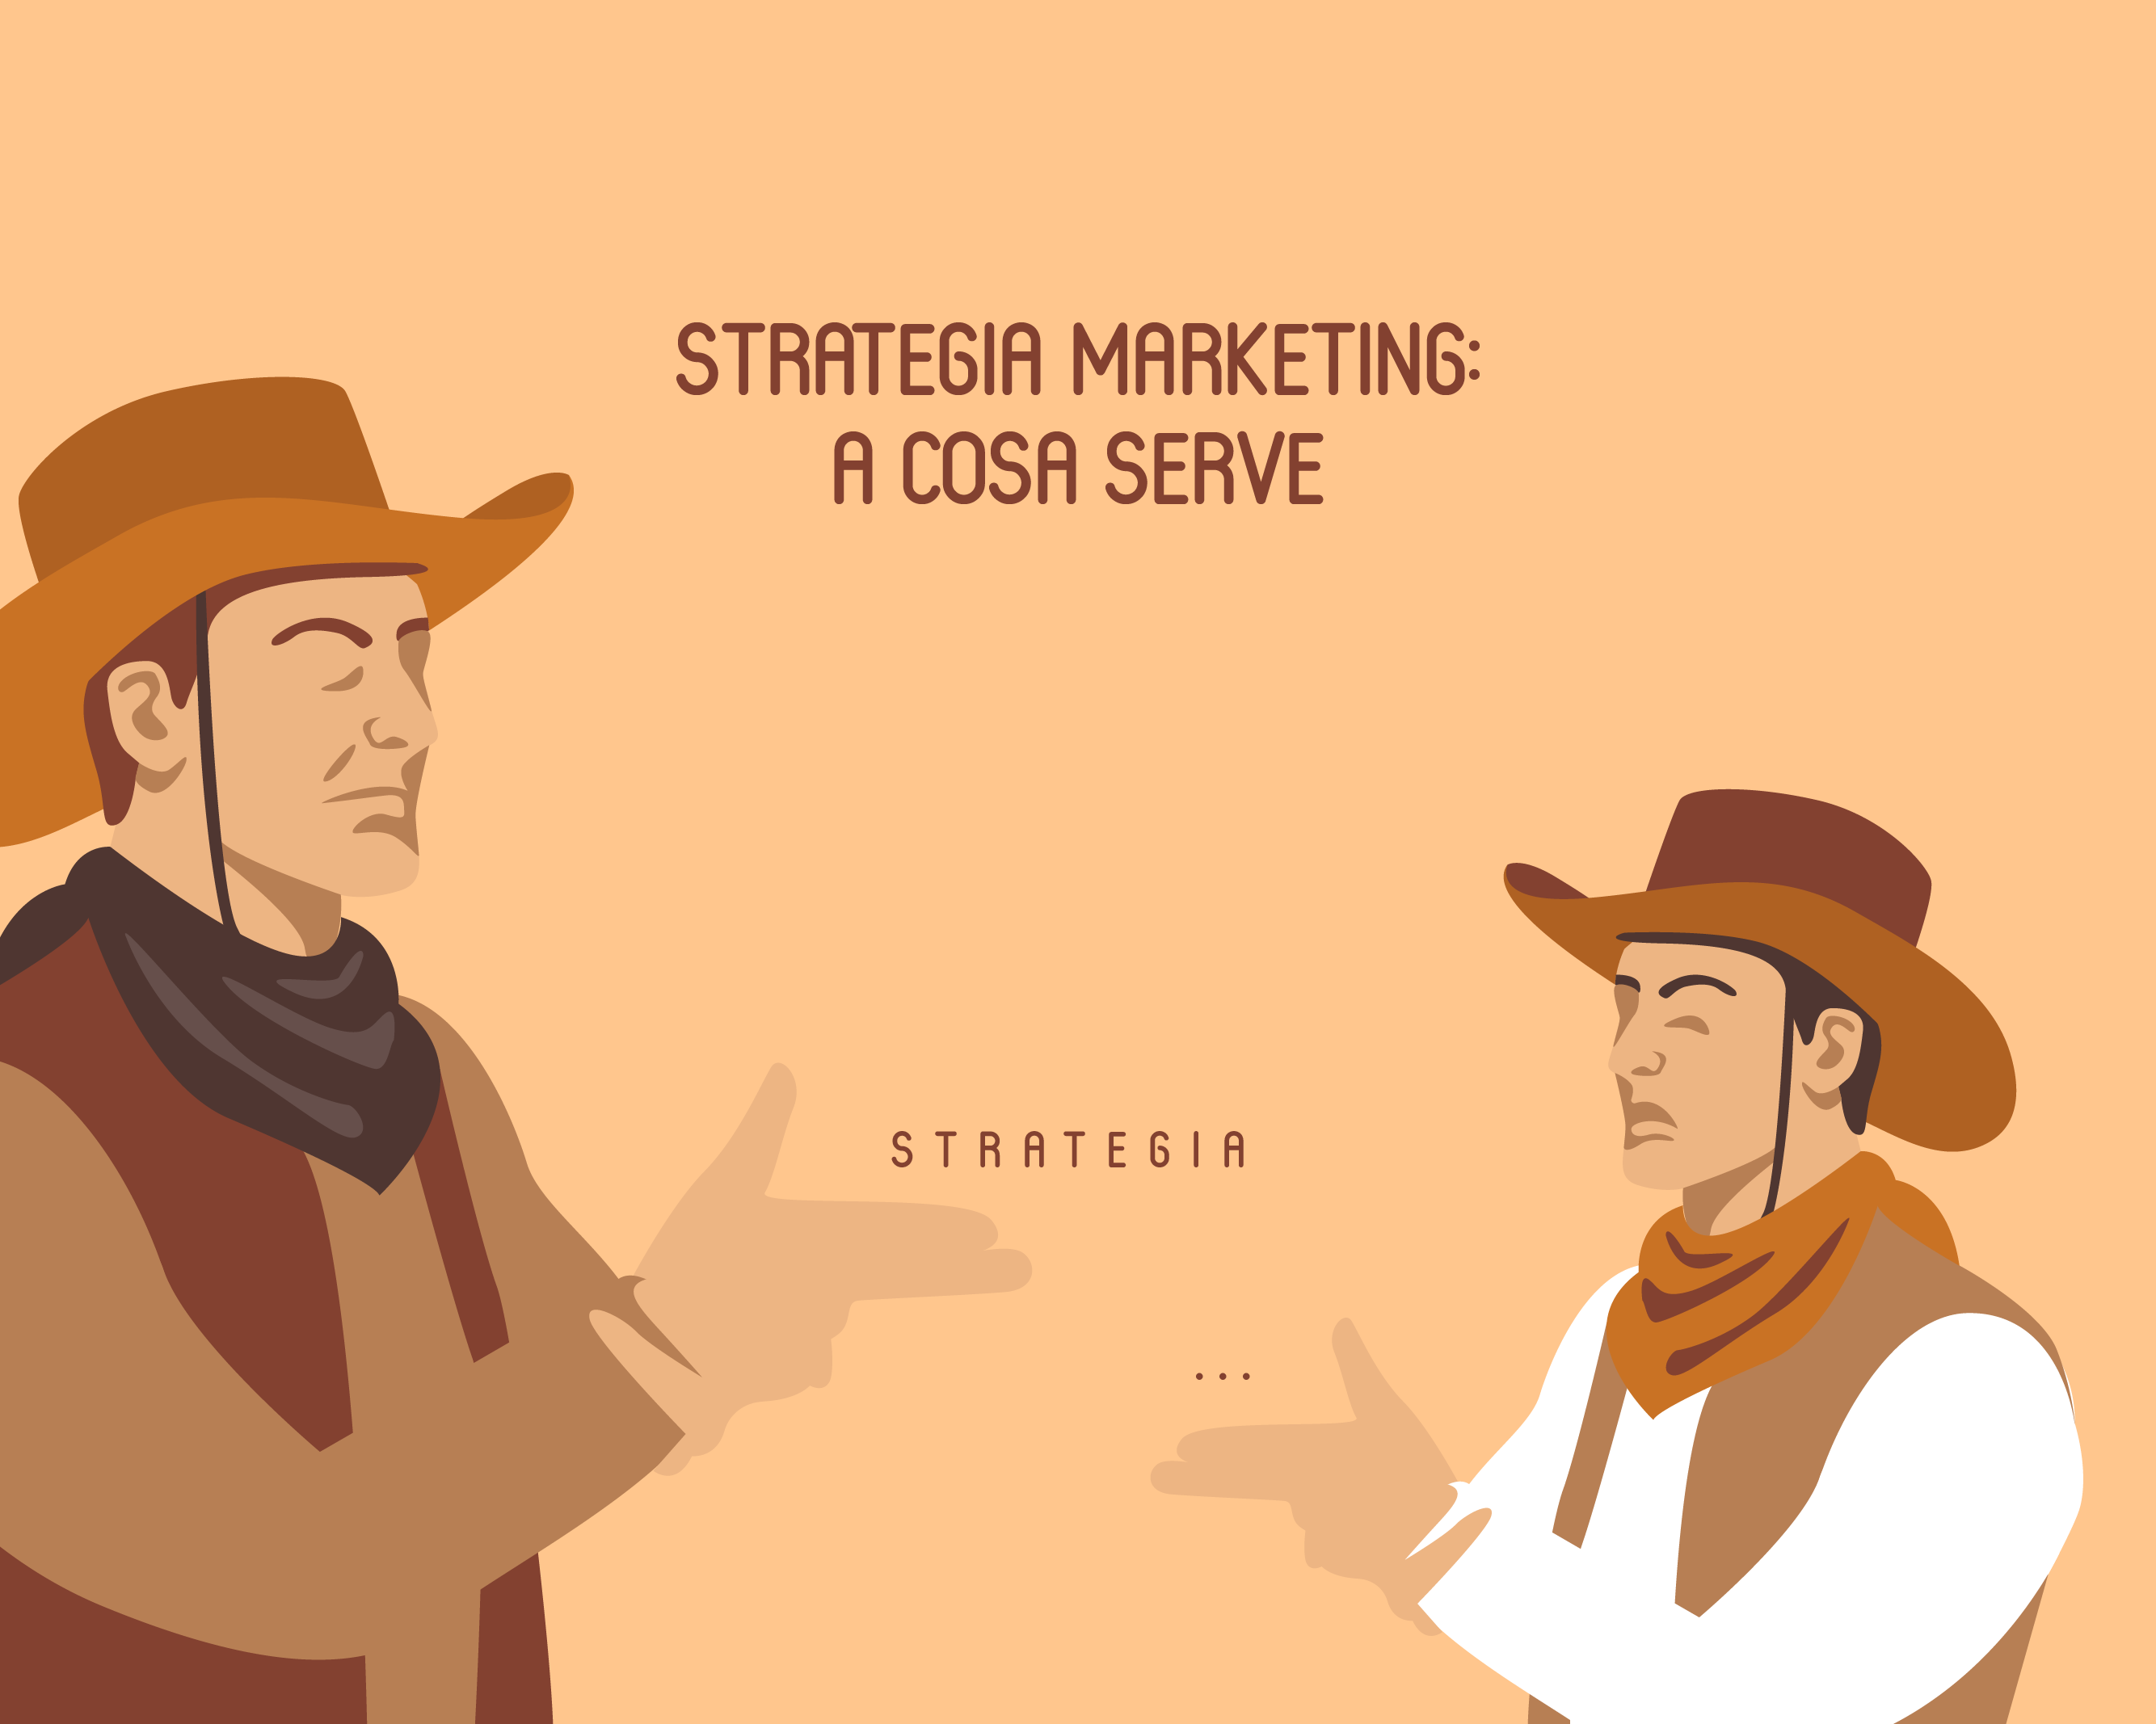 Strategia marketing: a cosa serve